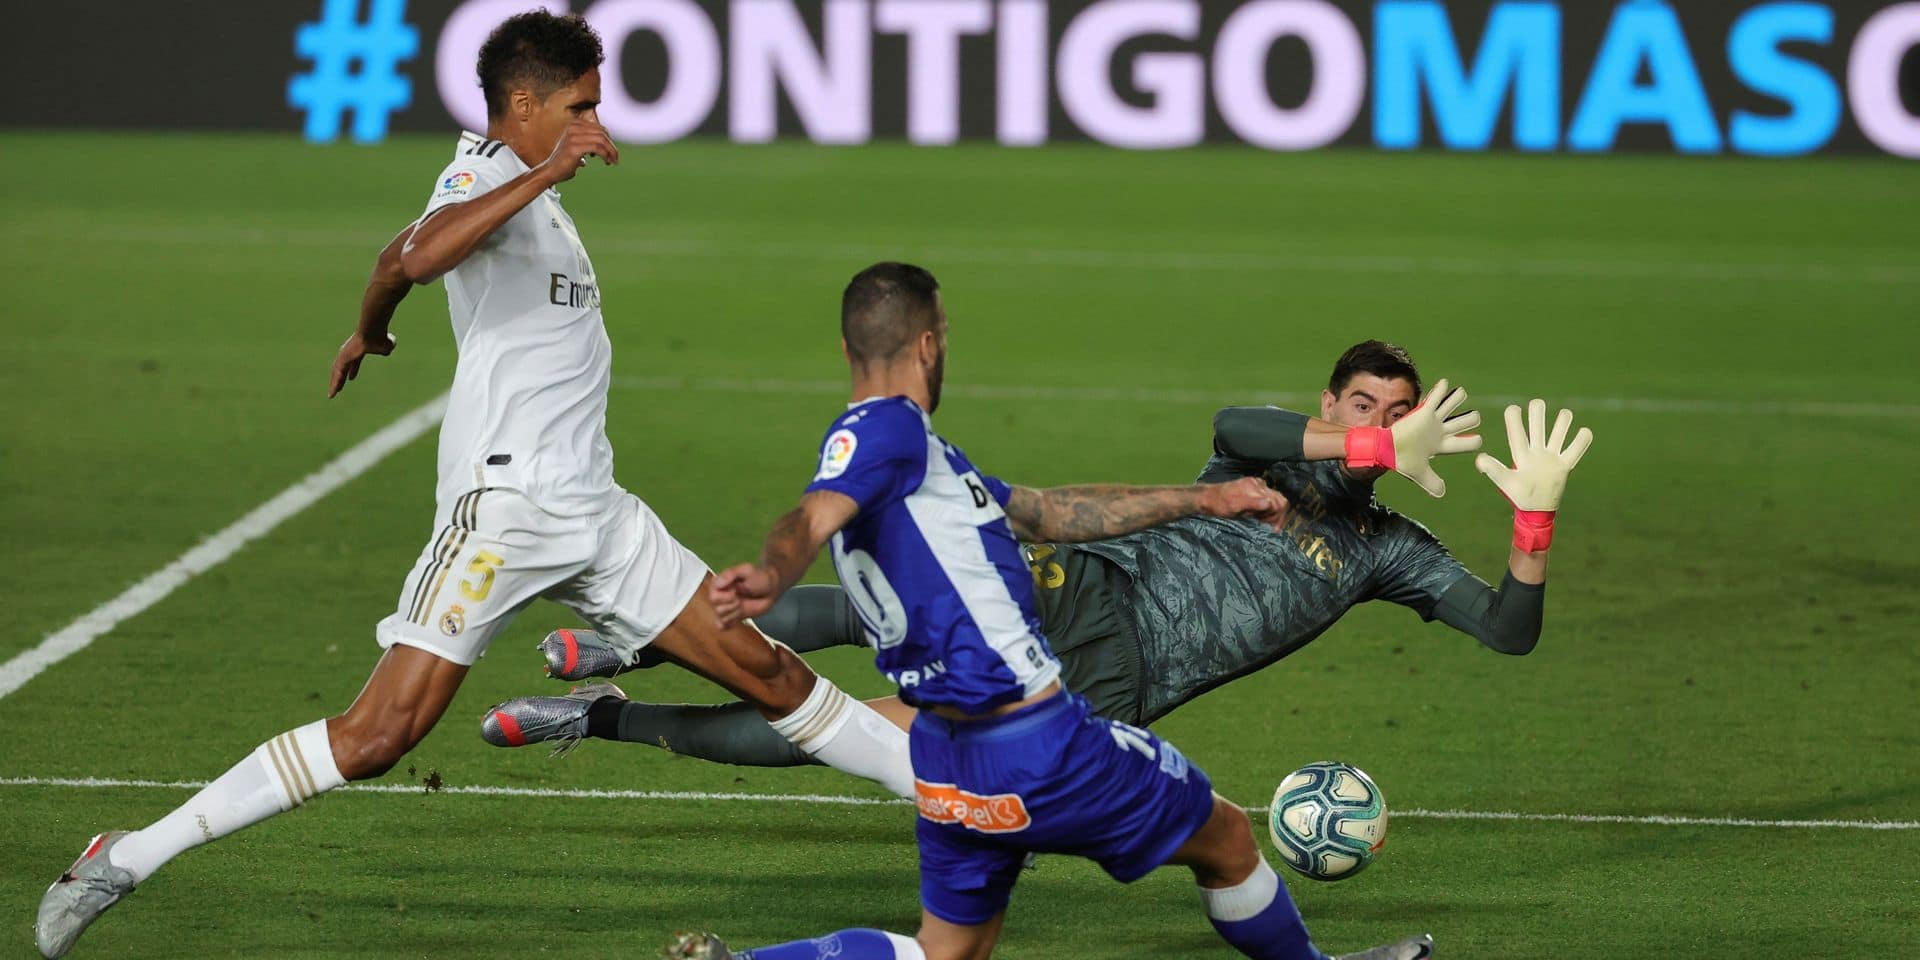 Real Madrid - Deportivo Alaves